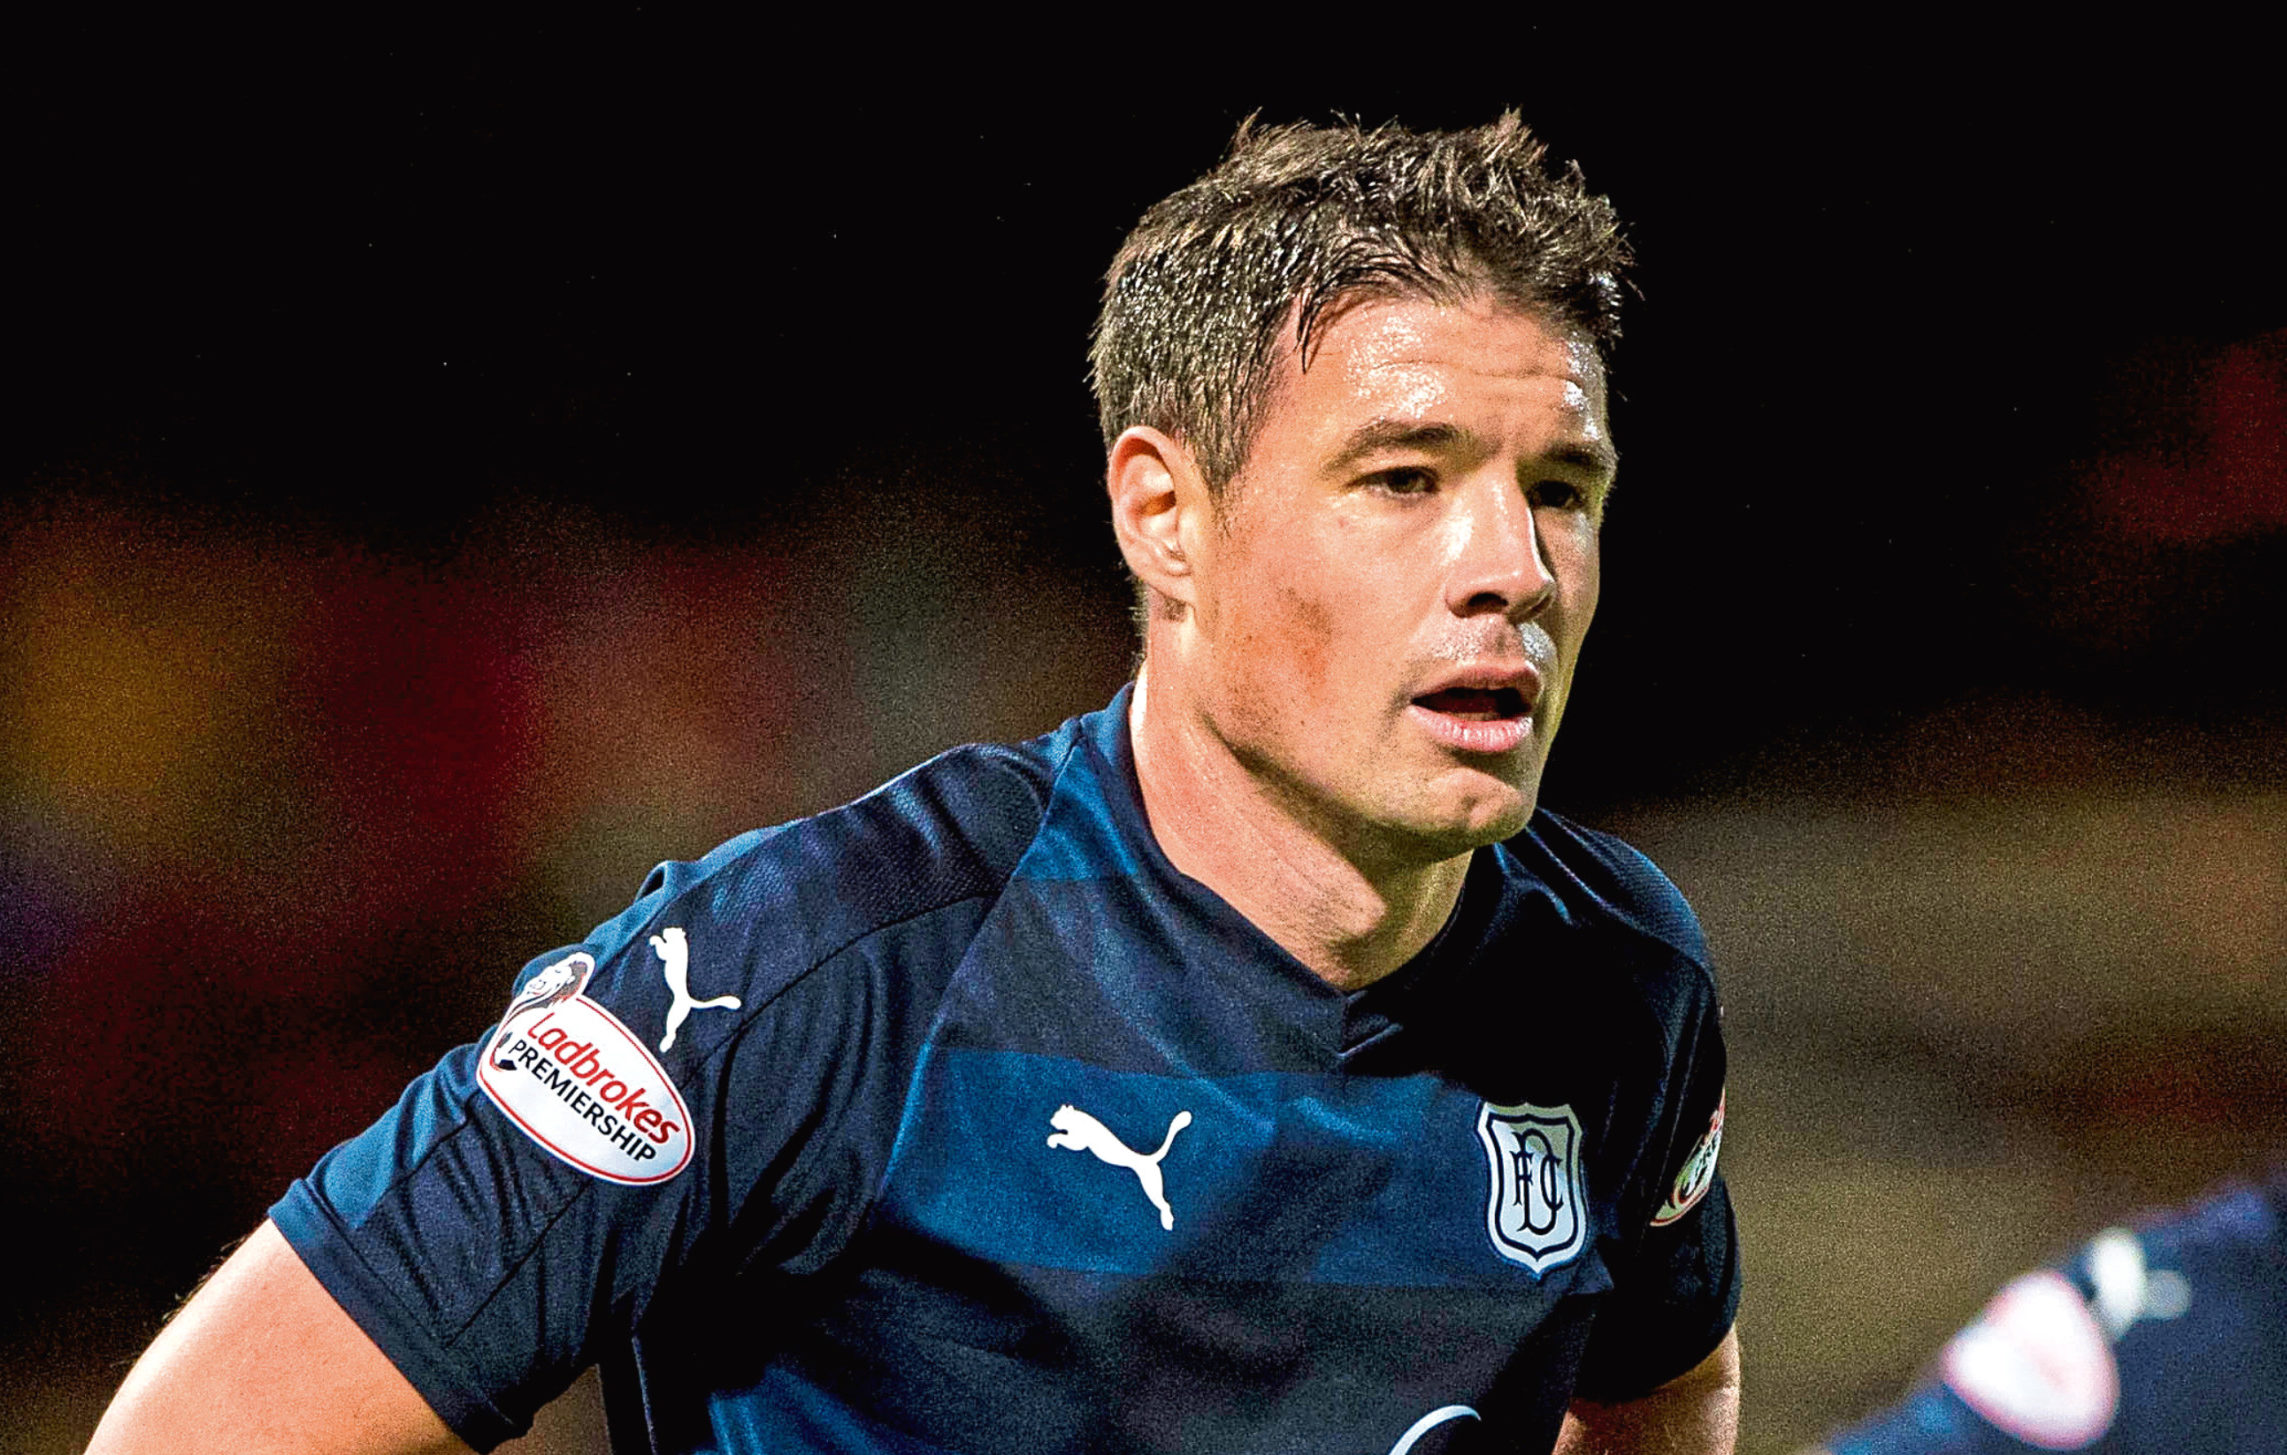 Darren O'Dea in action for Dundee